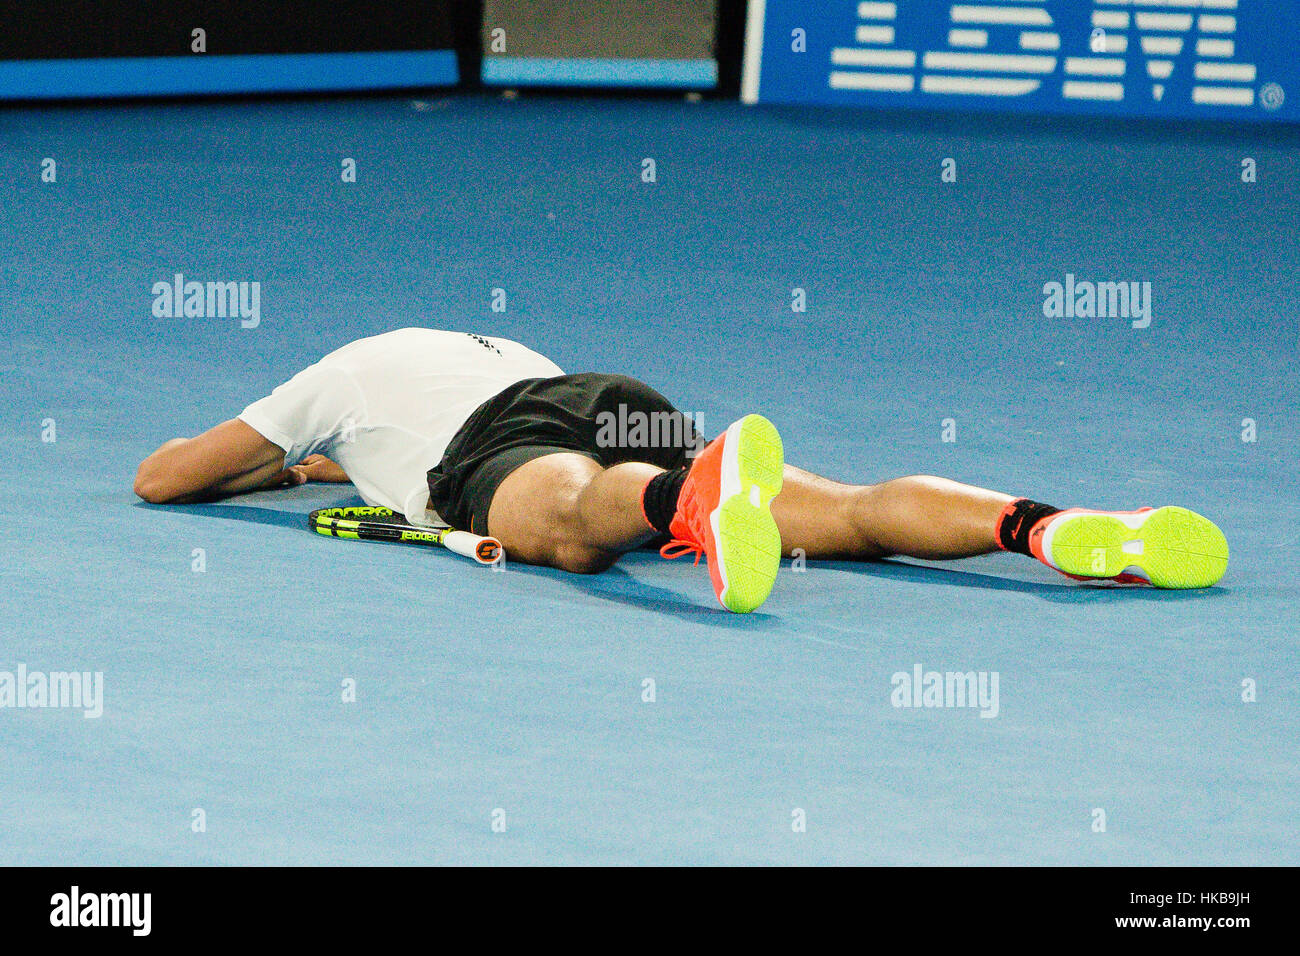 Melbourne, Australia. 27th Jan, 2017. Rafael Nadal of Spain went into his 4th final at the 2017 Australian Open - Stock Image